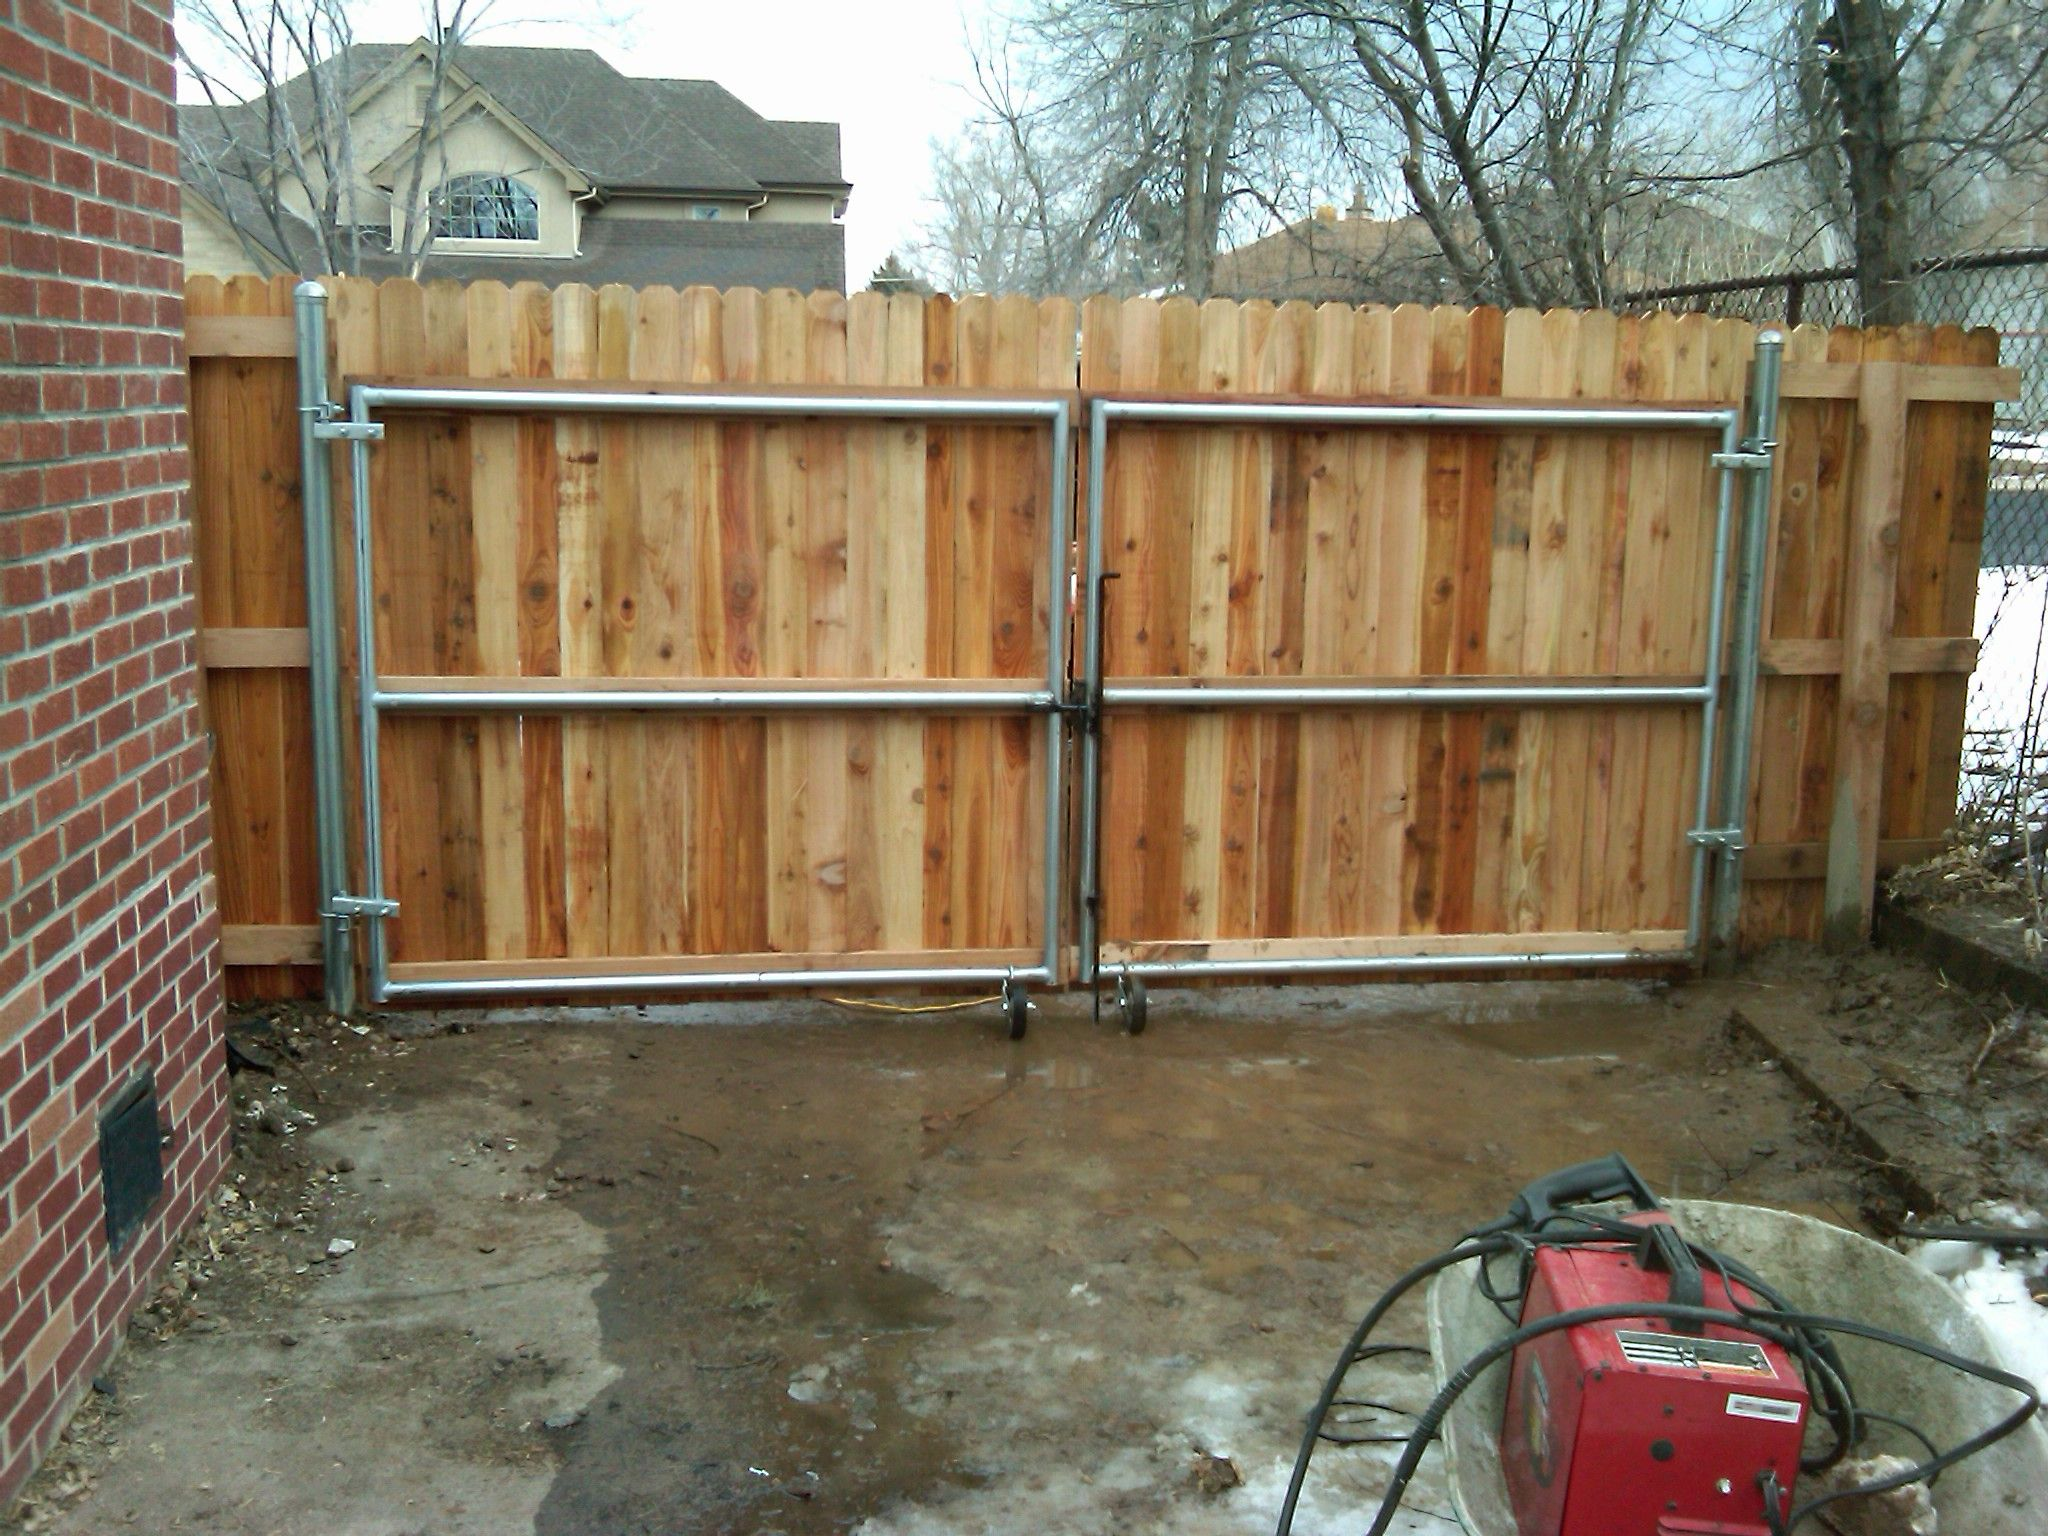 12 39 X 6 39 Wood Gate W Steel Frame Andrew Thomas